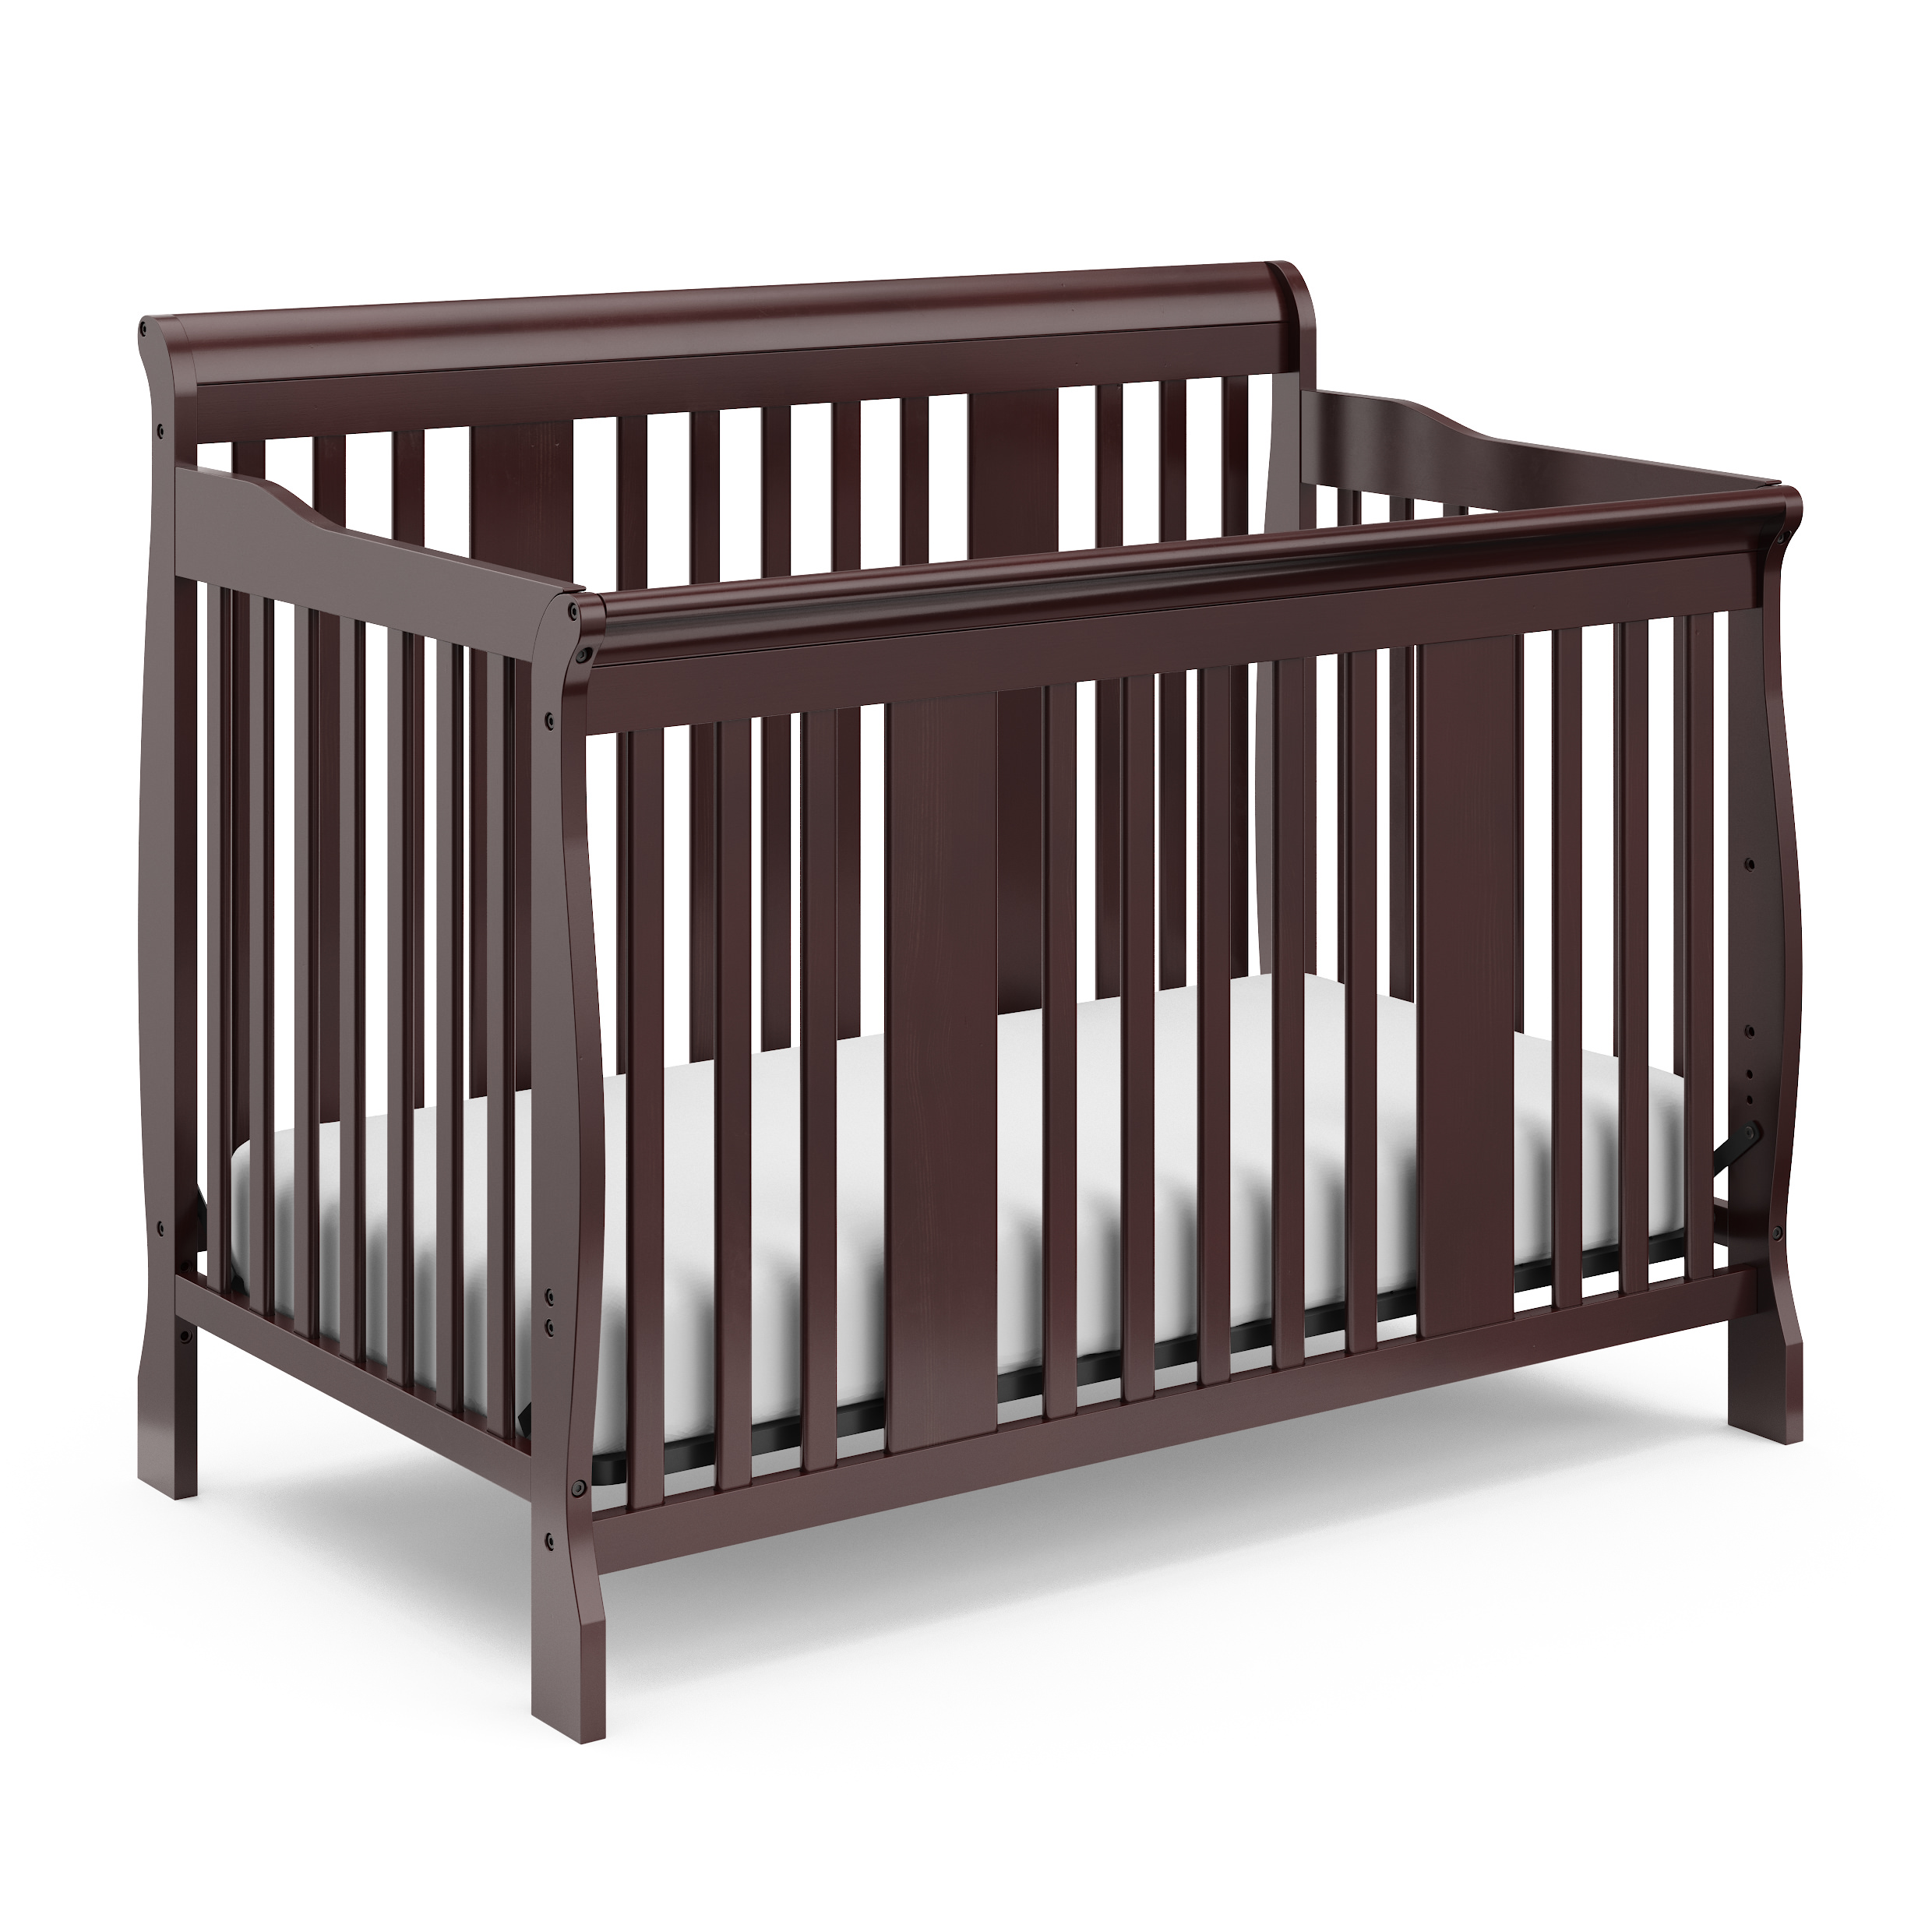 Storkcraft Tuscany 4 in 1 Convertible Crib White